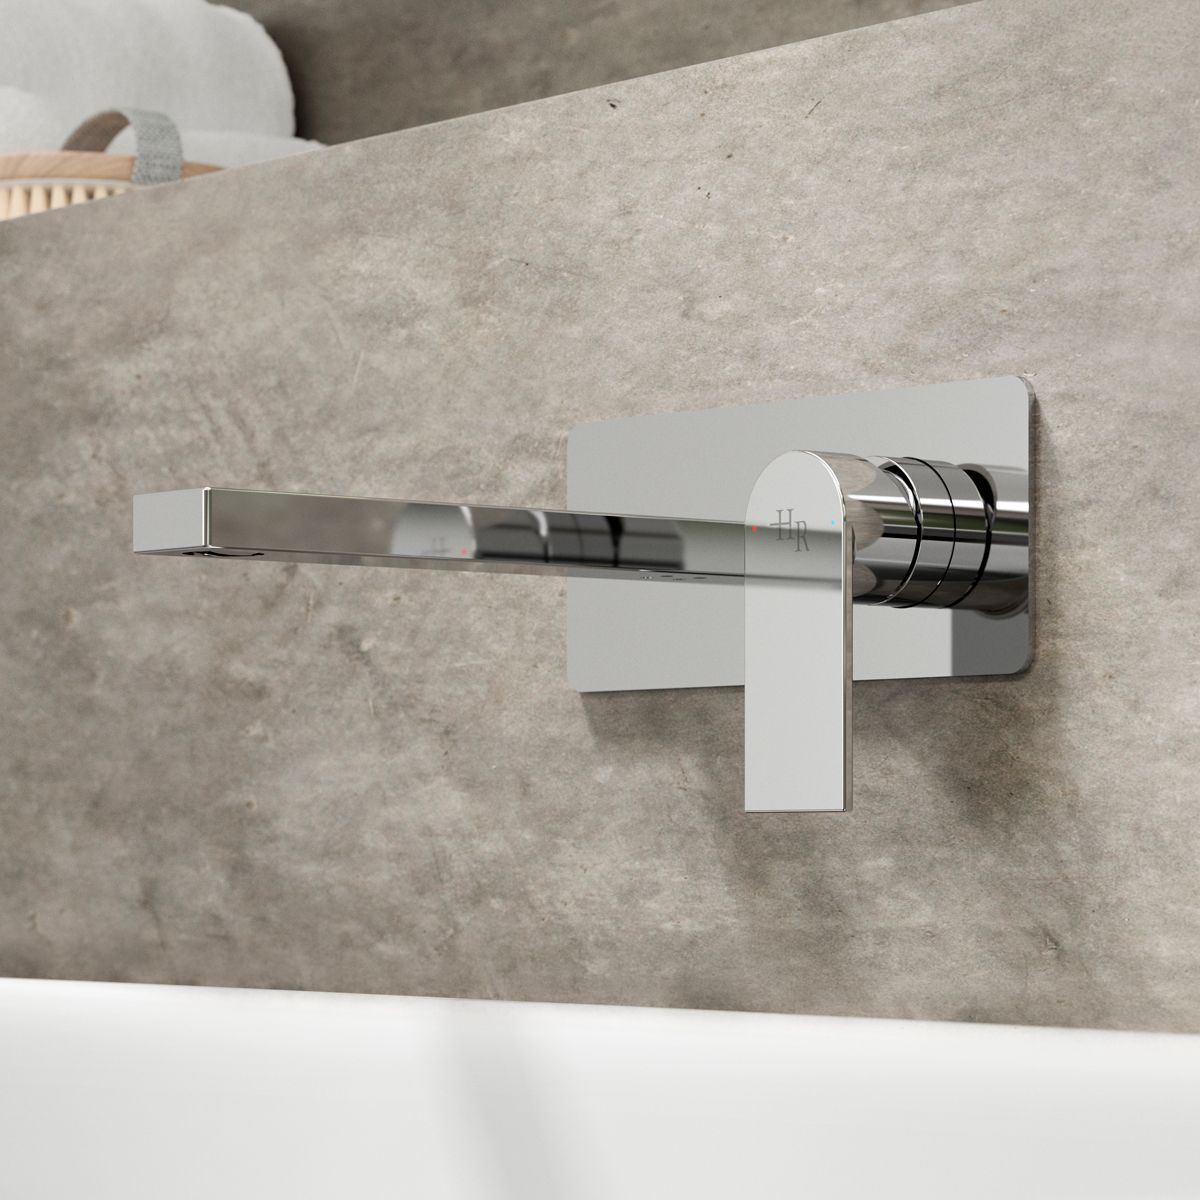 Hudson Reed Sottile Wall Mounted Basin Mixer Tap Lifestyle